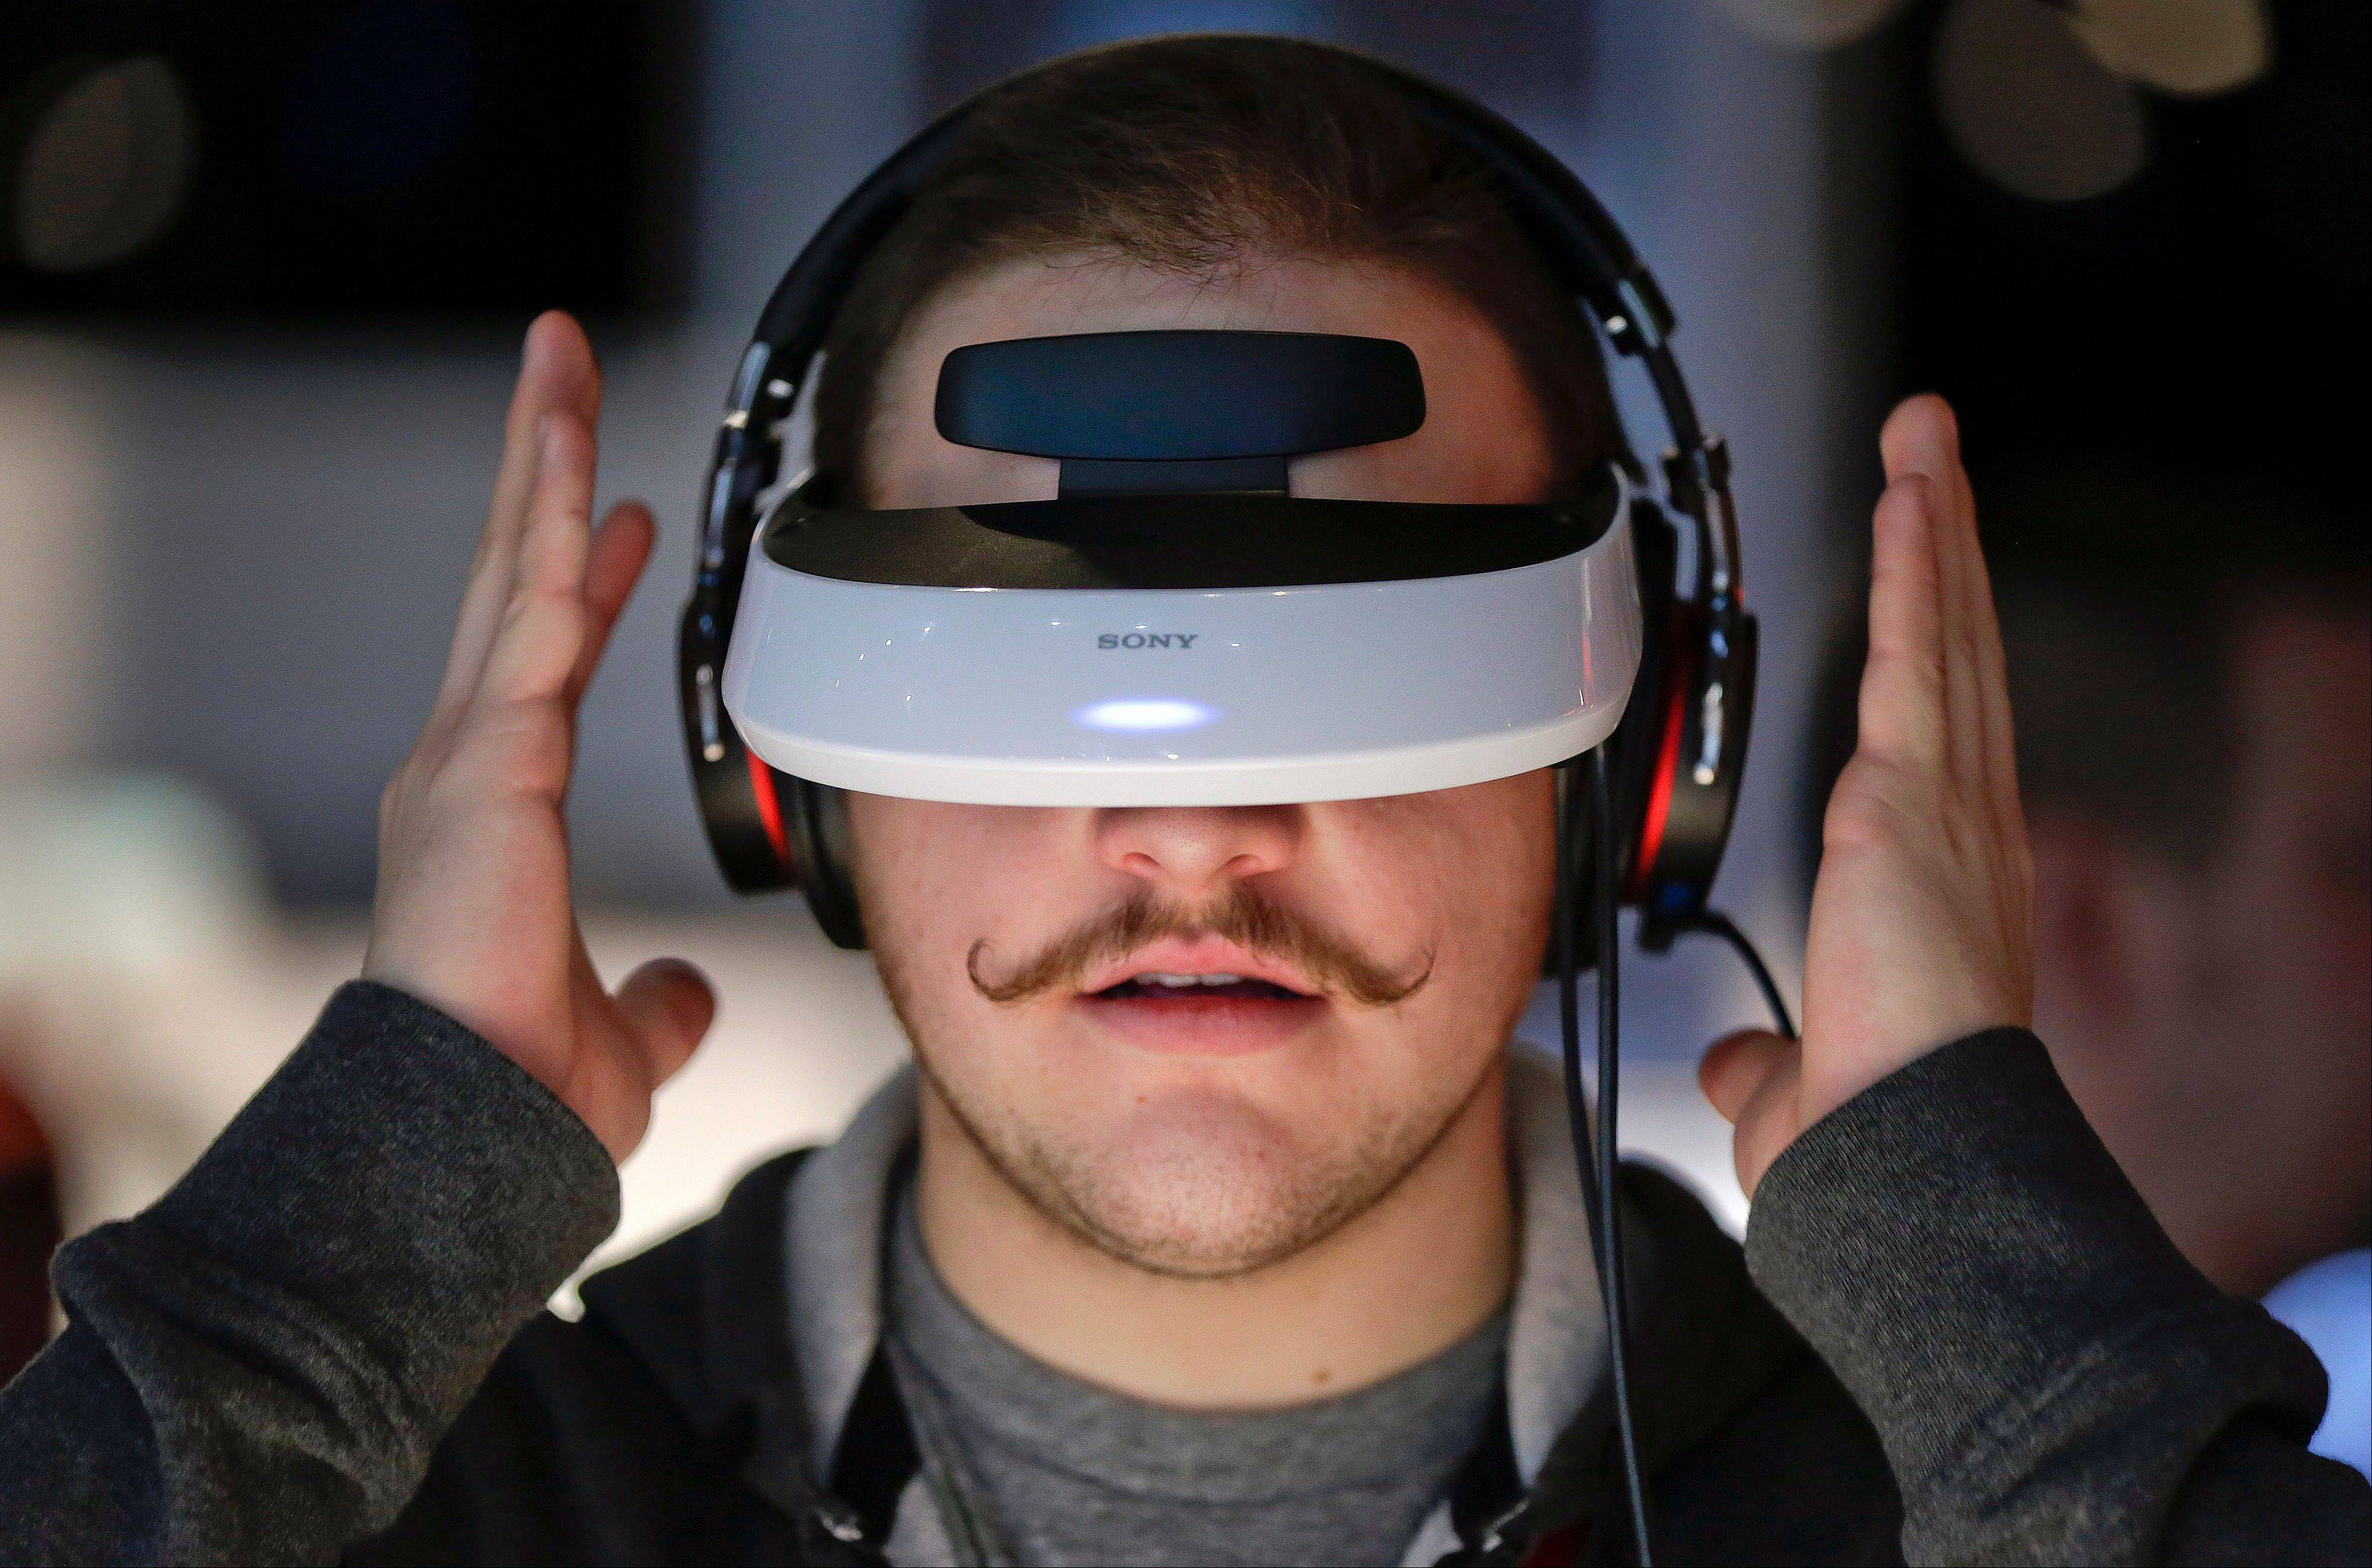 Justin Bredeau, of Las Vegas, tries out a Sony 3-D personal viewer at the Consumer Electronics Show, Friday in Las Vegas. The viewer simulates watching a 150-inch screen from 12 feet away.